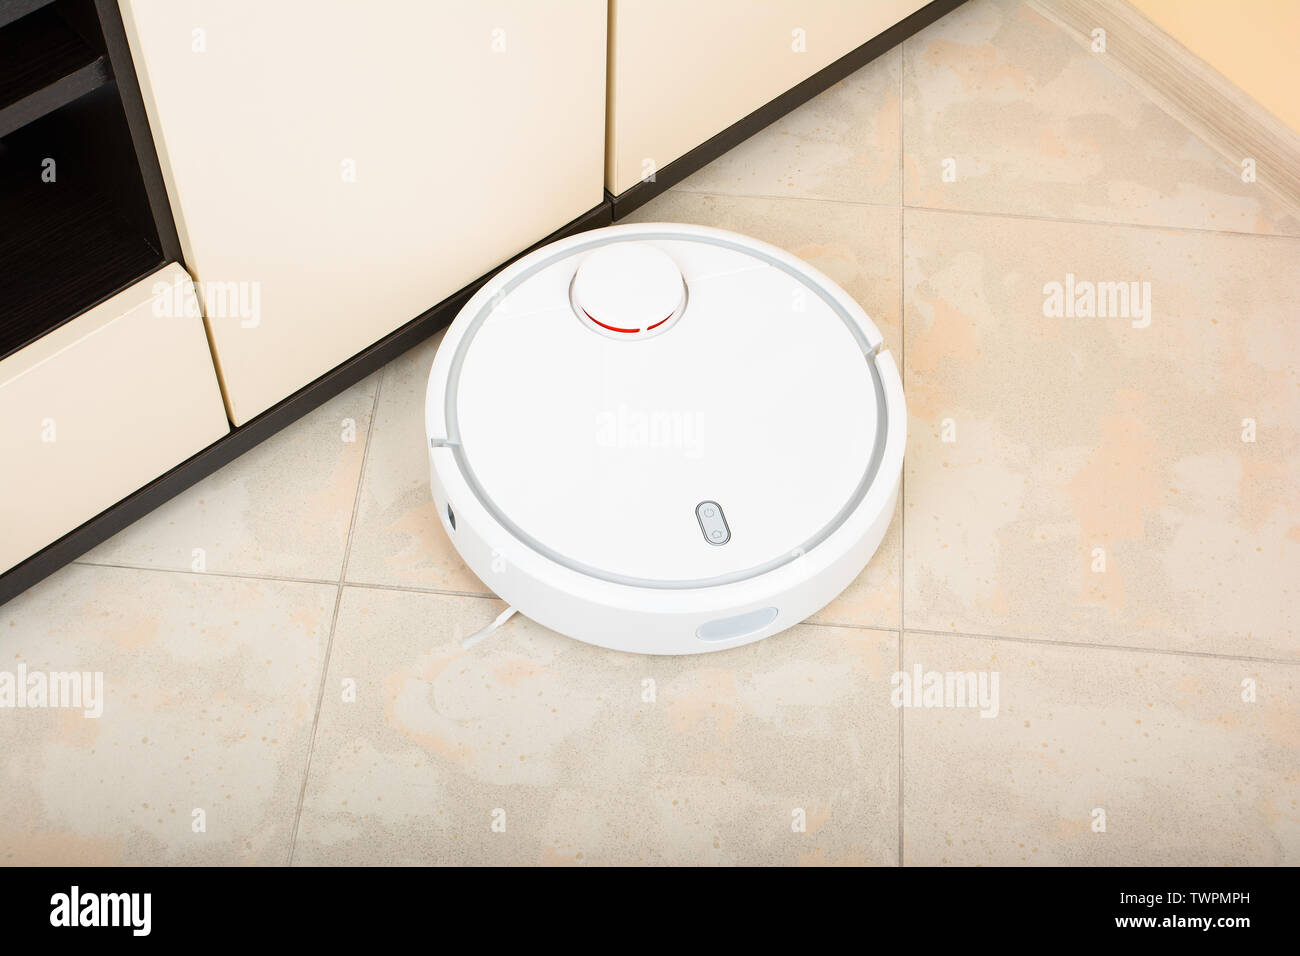 Vacuum Cleaner Robot On Polished Granite Floor In A Living Room Stock Photo Alamy